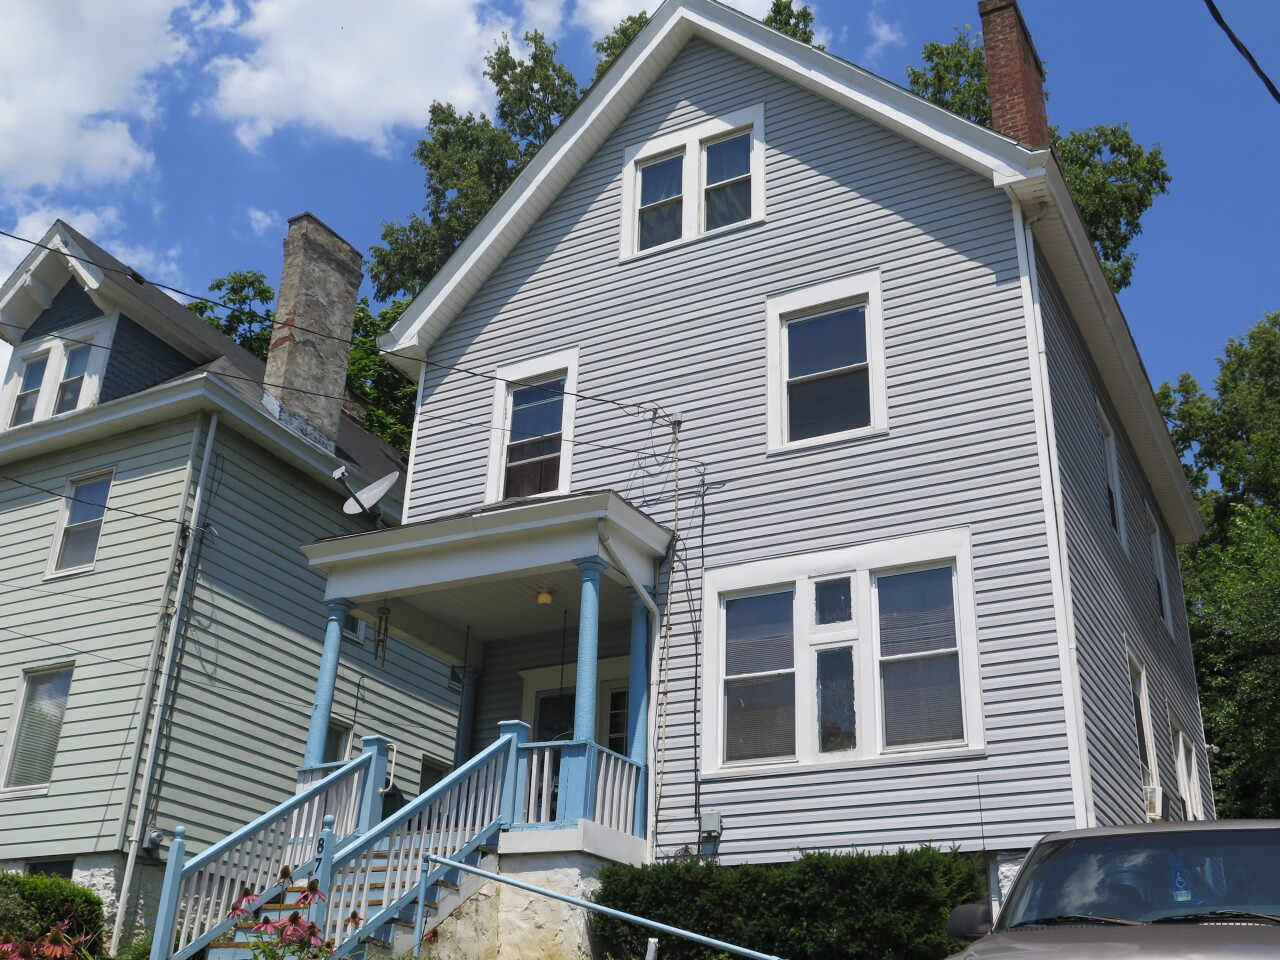 Robert McCrary's Avondale home is pictured in this photograph. it has grey siding and white and blue trim. A railing leading up to the front steps is visible in the photo.